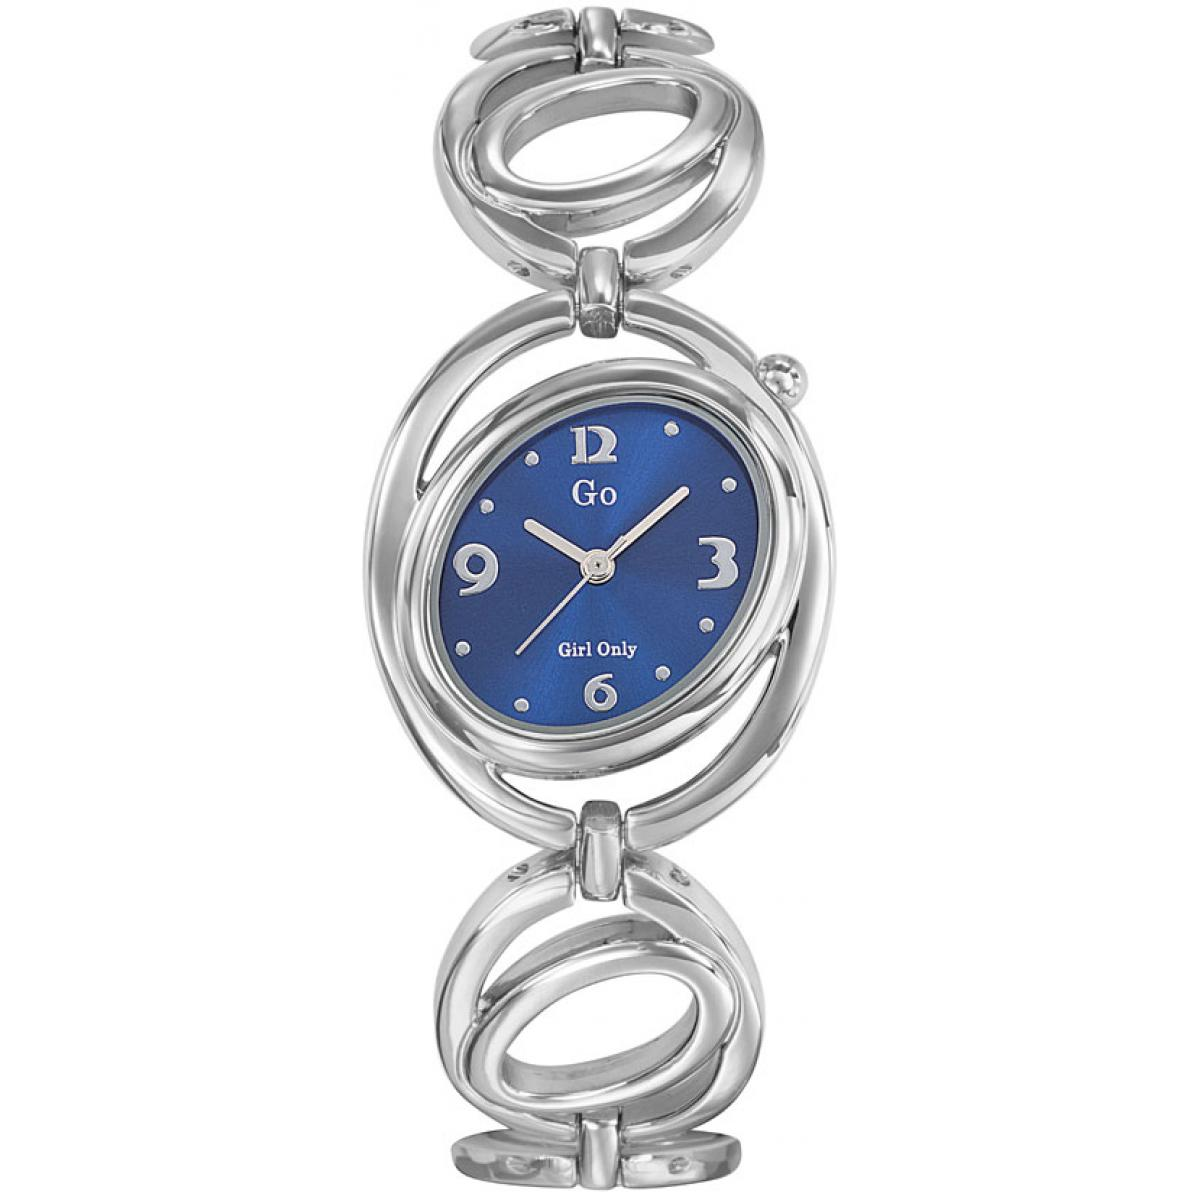 Montre Go Girl Only 694819 - Montre Ovale Quartz Femme